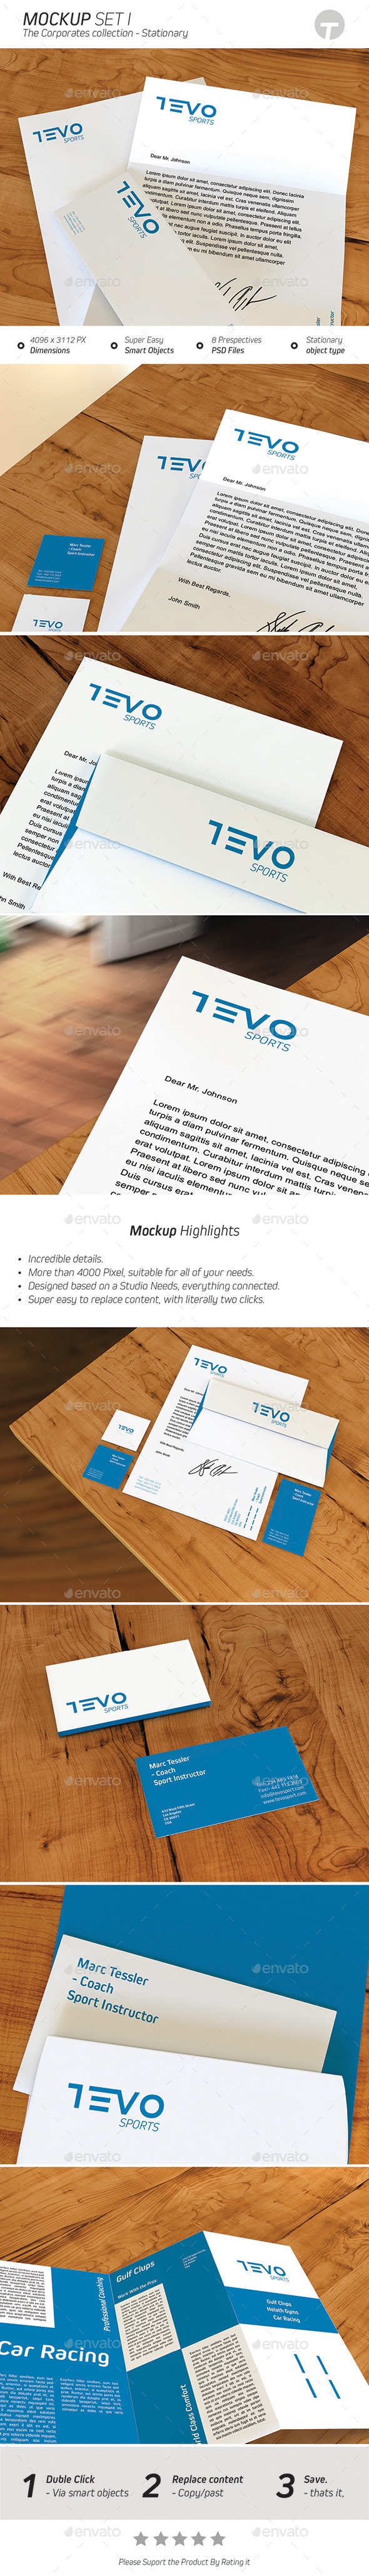 GraphicRiver Stationary Mockup Corporates Collection Set 1 9515174